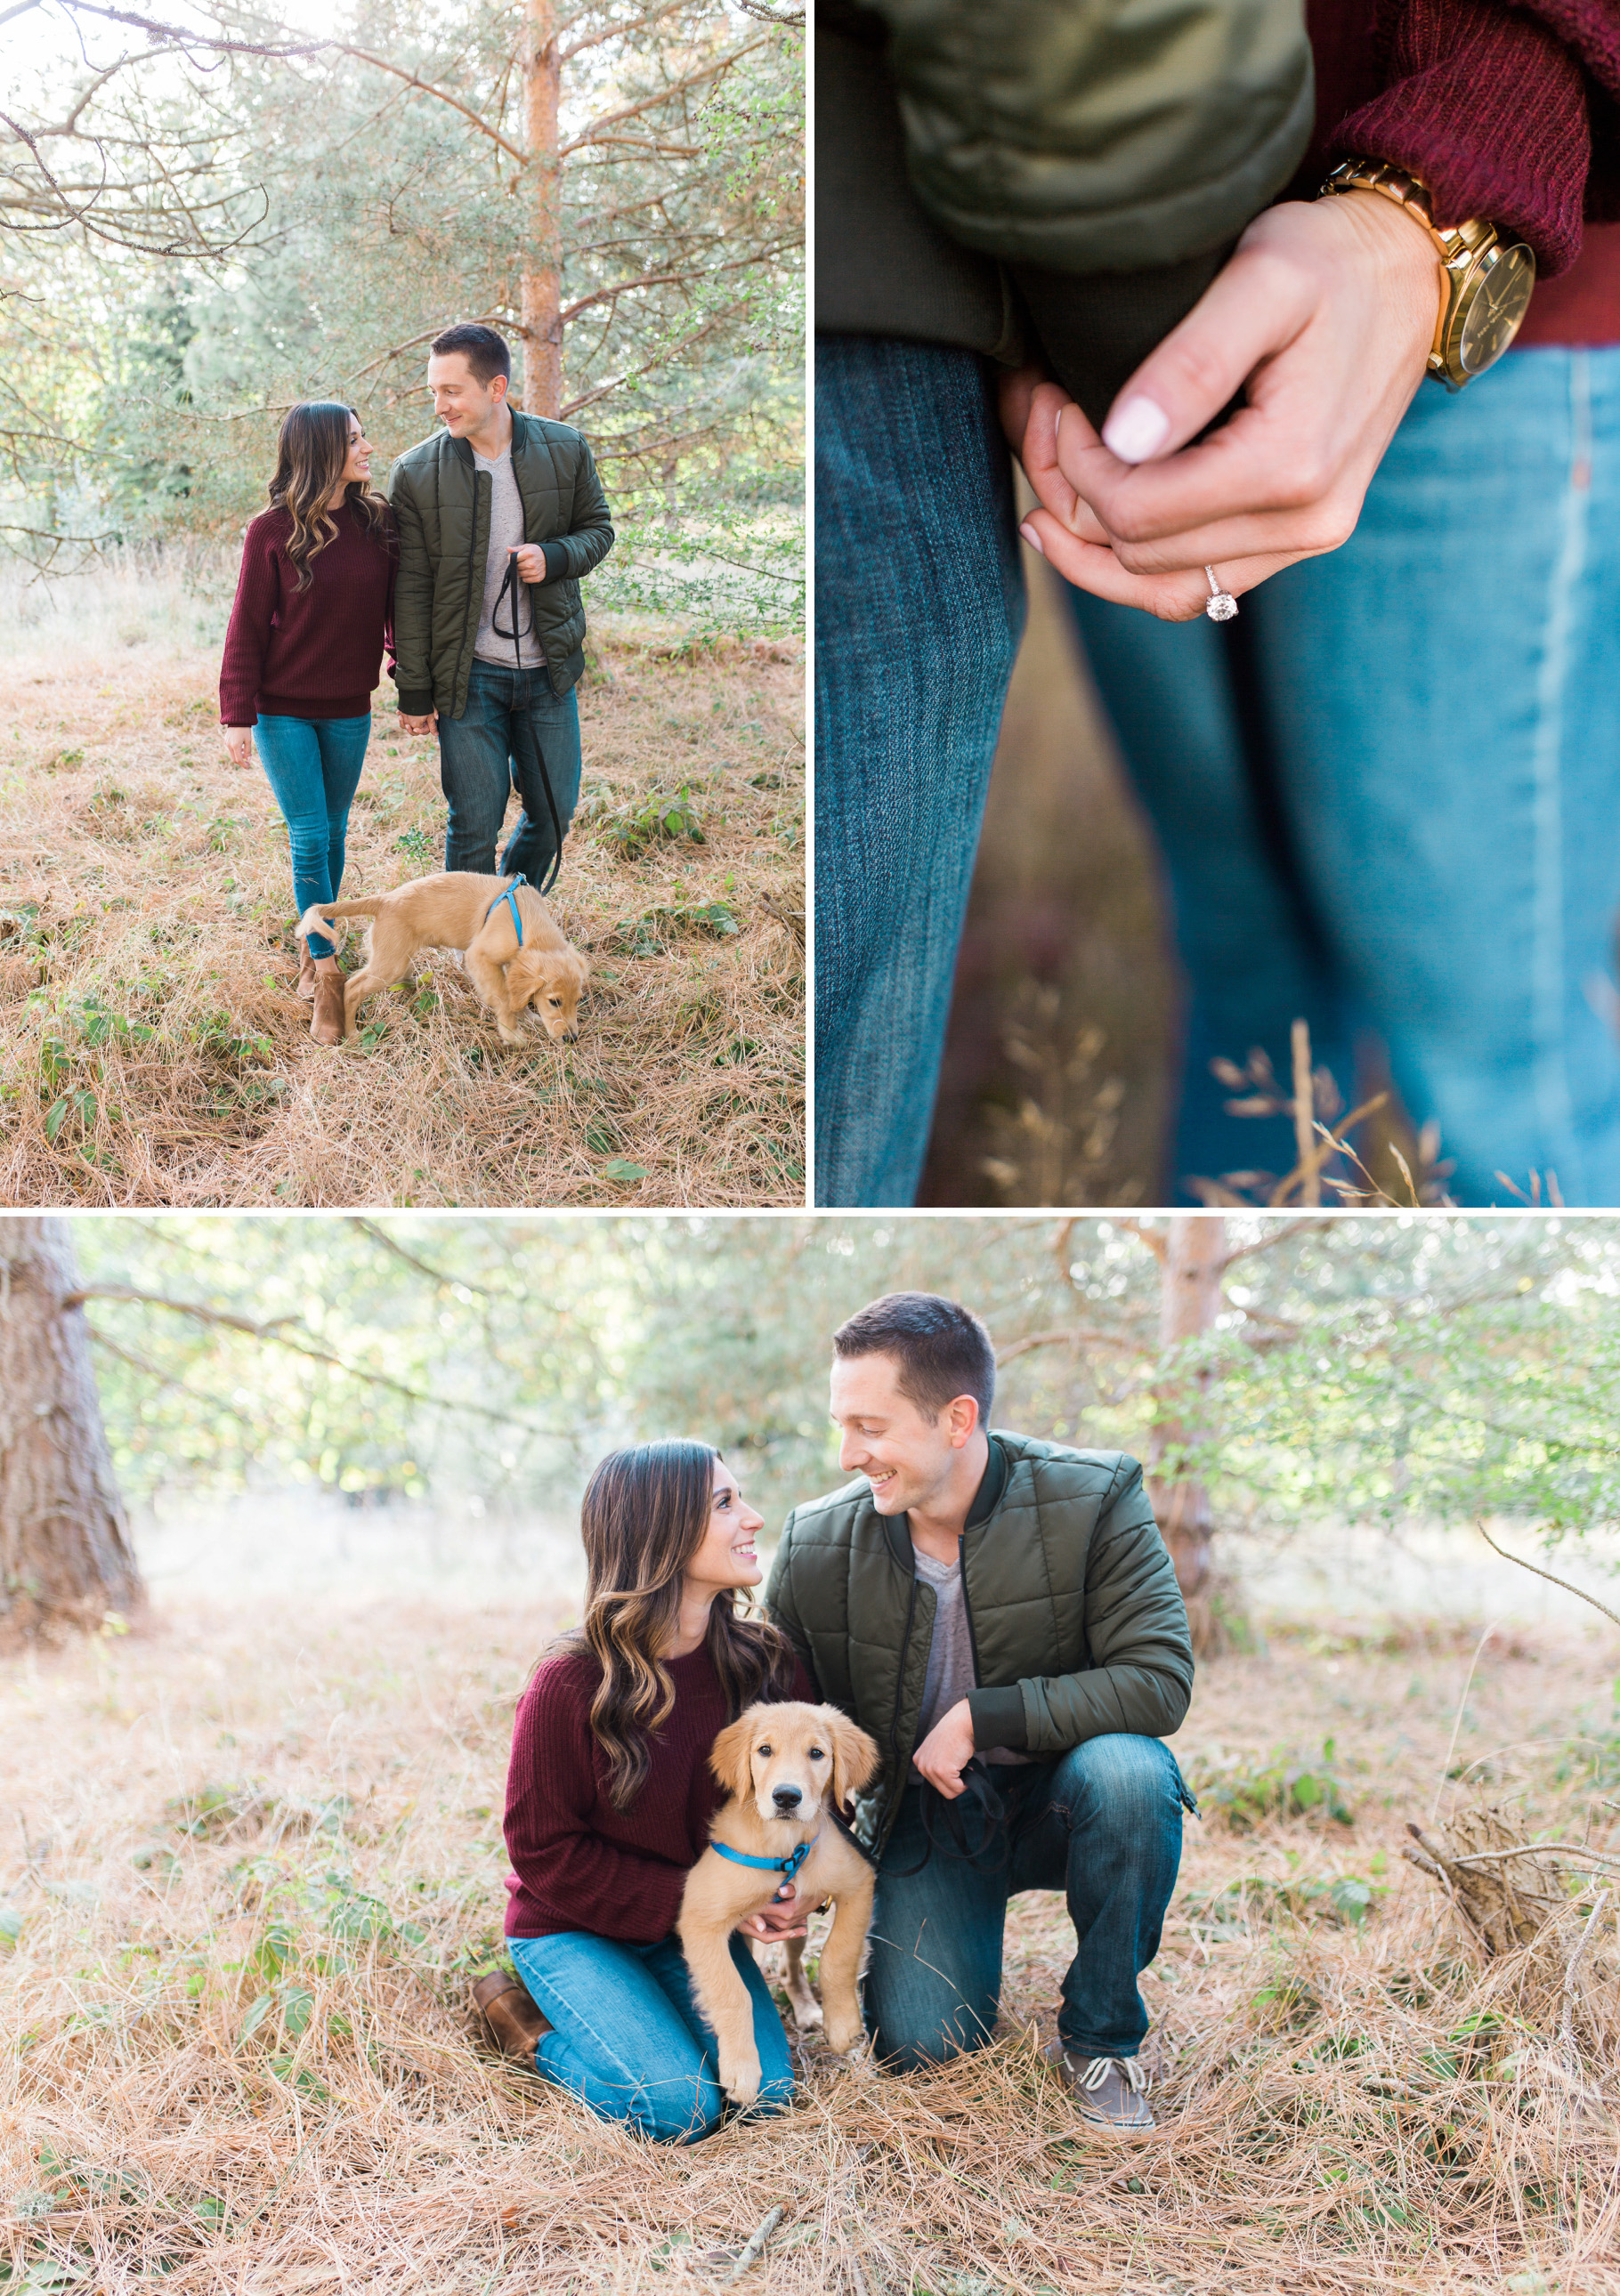 Discovery-Park-Seattle-Engagment-Photographer-Wedding-Photography-by-Betty-Elaine_0001